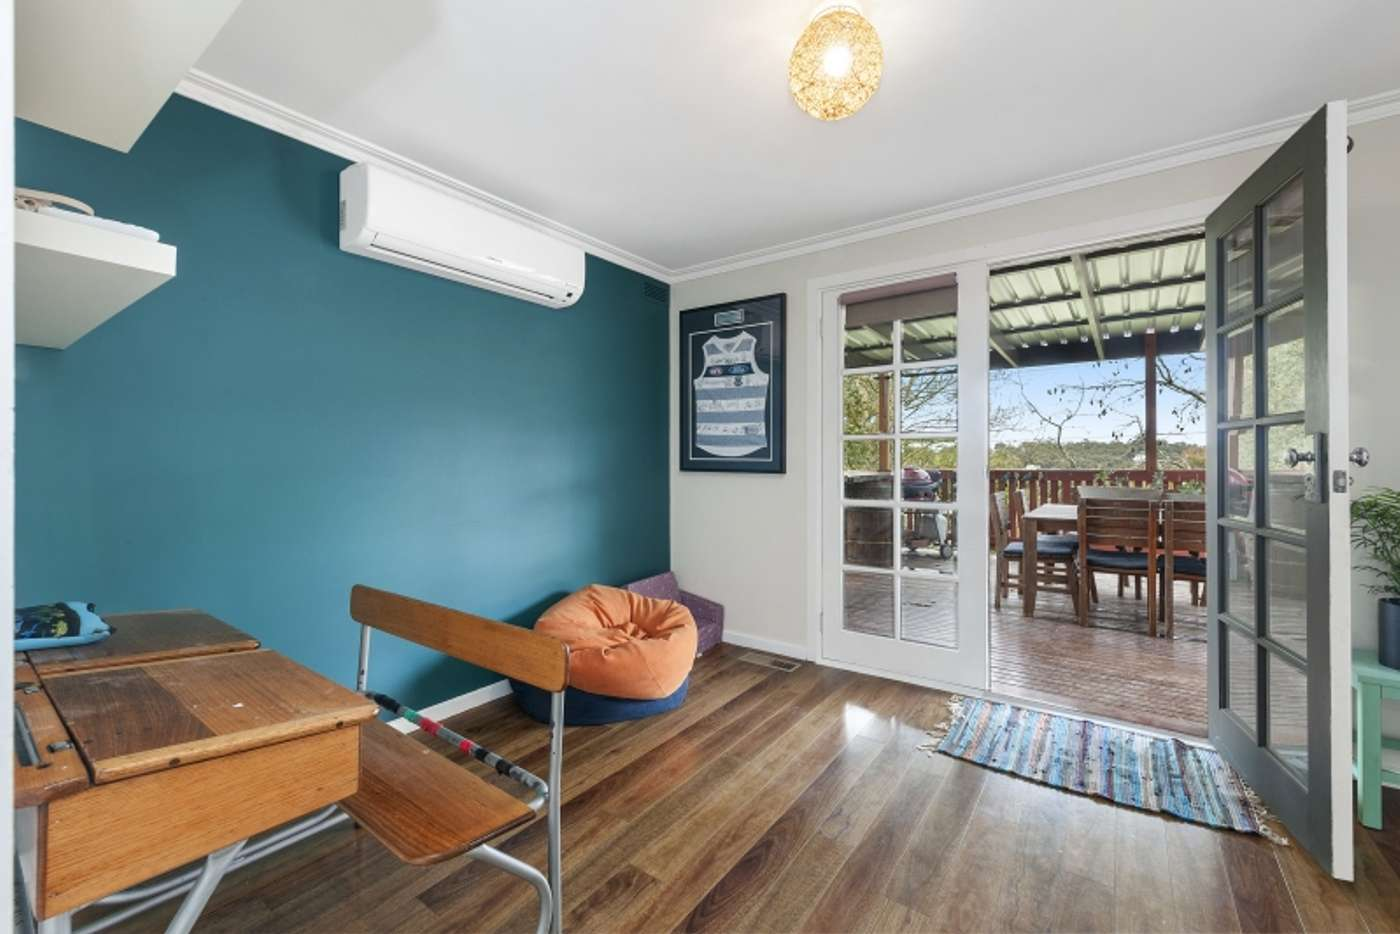 Seventh view of Homely house listing, 610 Barkly, Buninyong VIC 3357